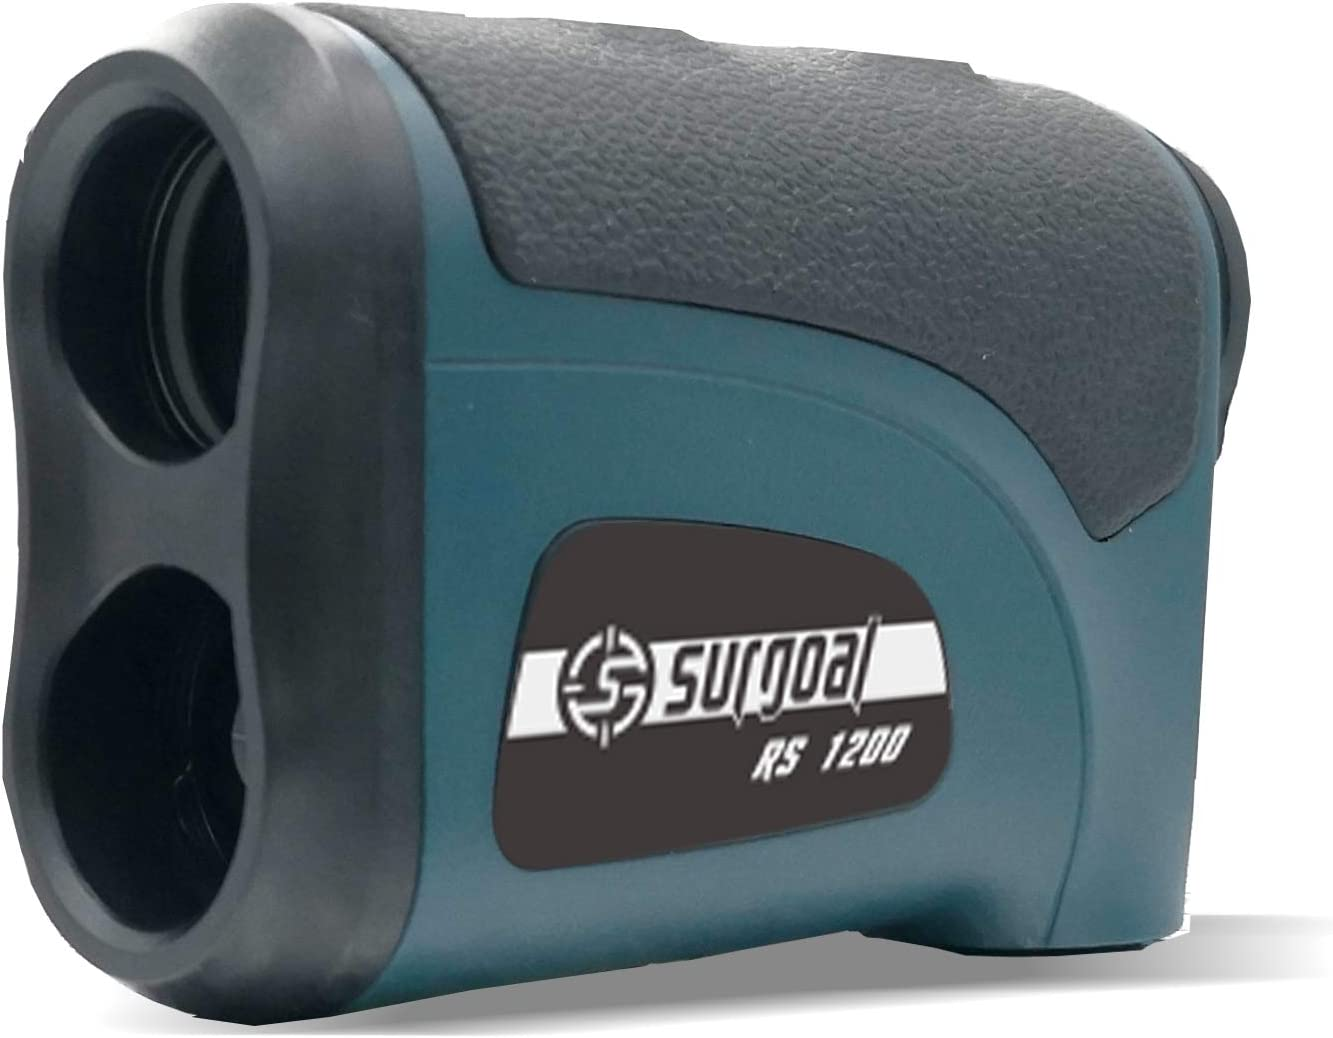 Surgoal HD 6X-Mag 1200YD Golf & Hunting Laser Rangefinder Waterproof with Slope, Flag-Lock, Continuous Scan, Height Difference Measurements : Sports & Outdoors